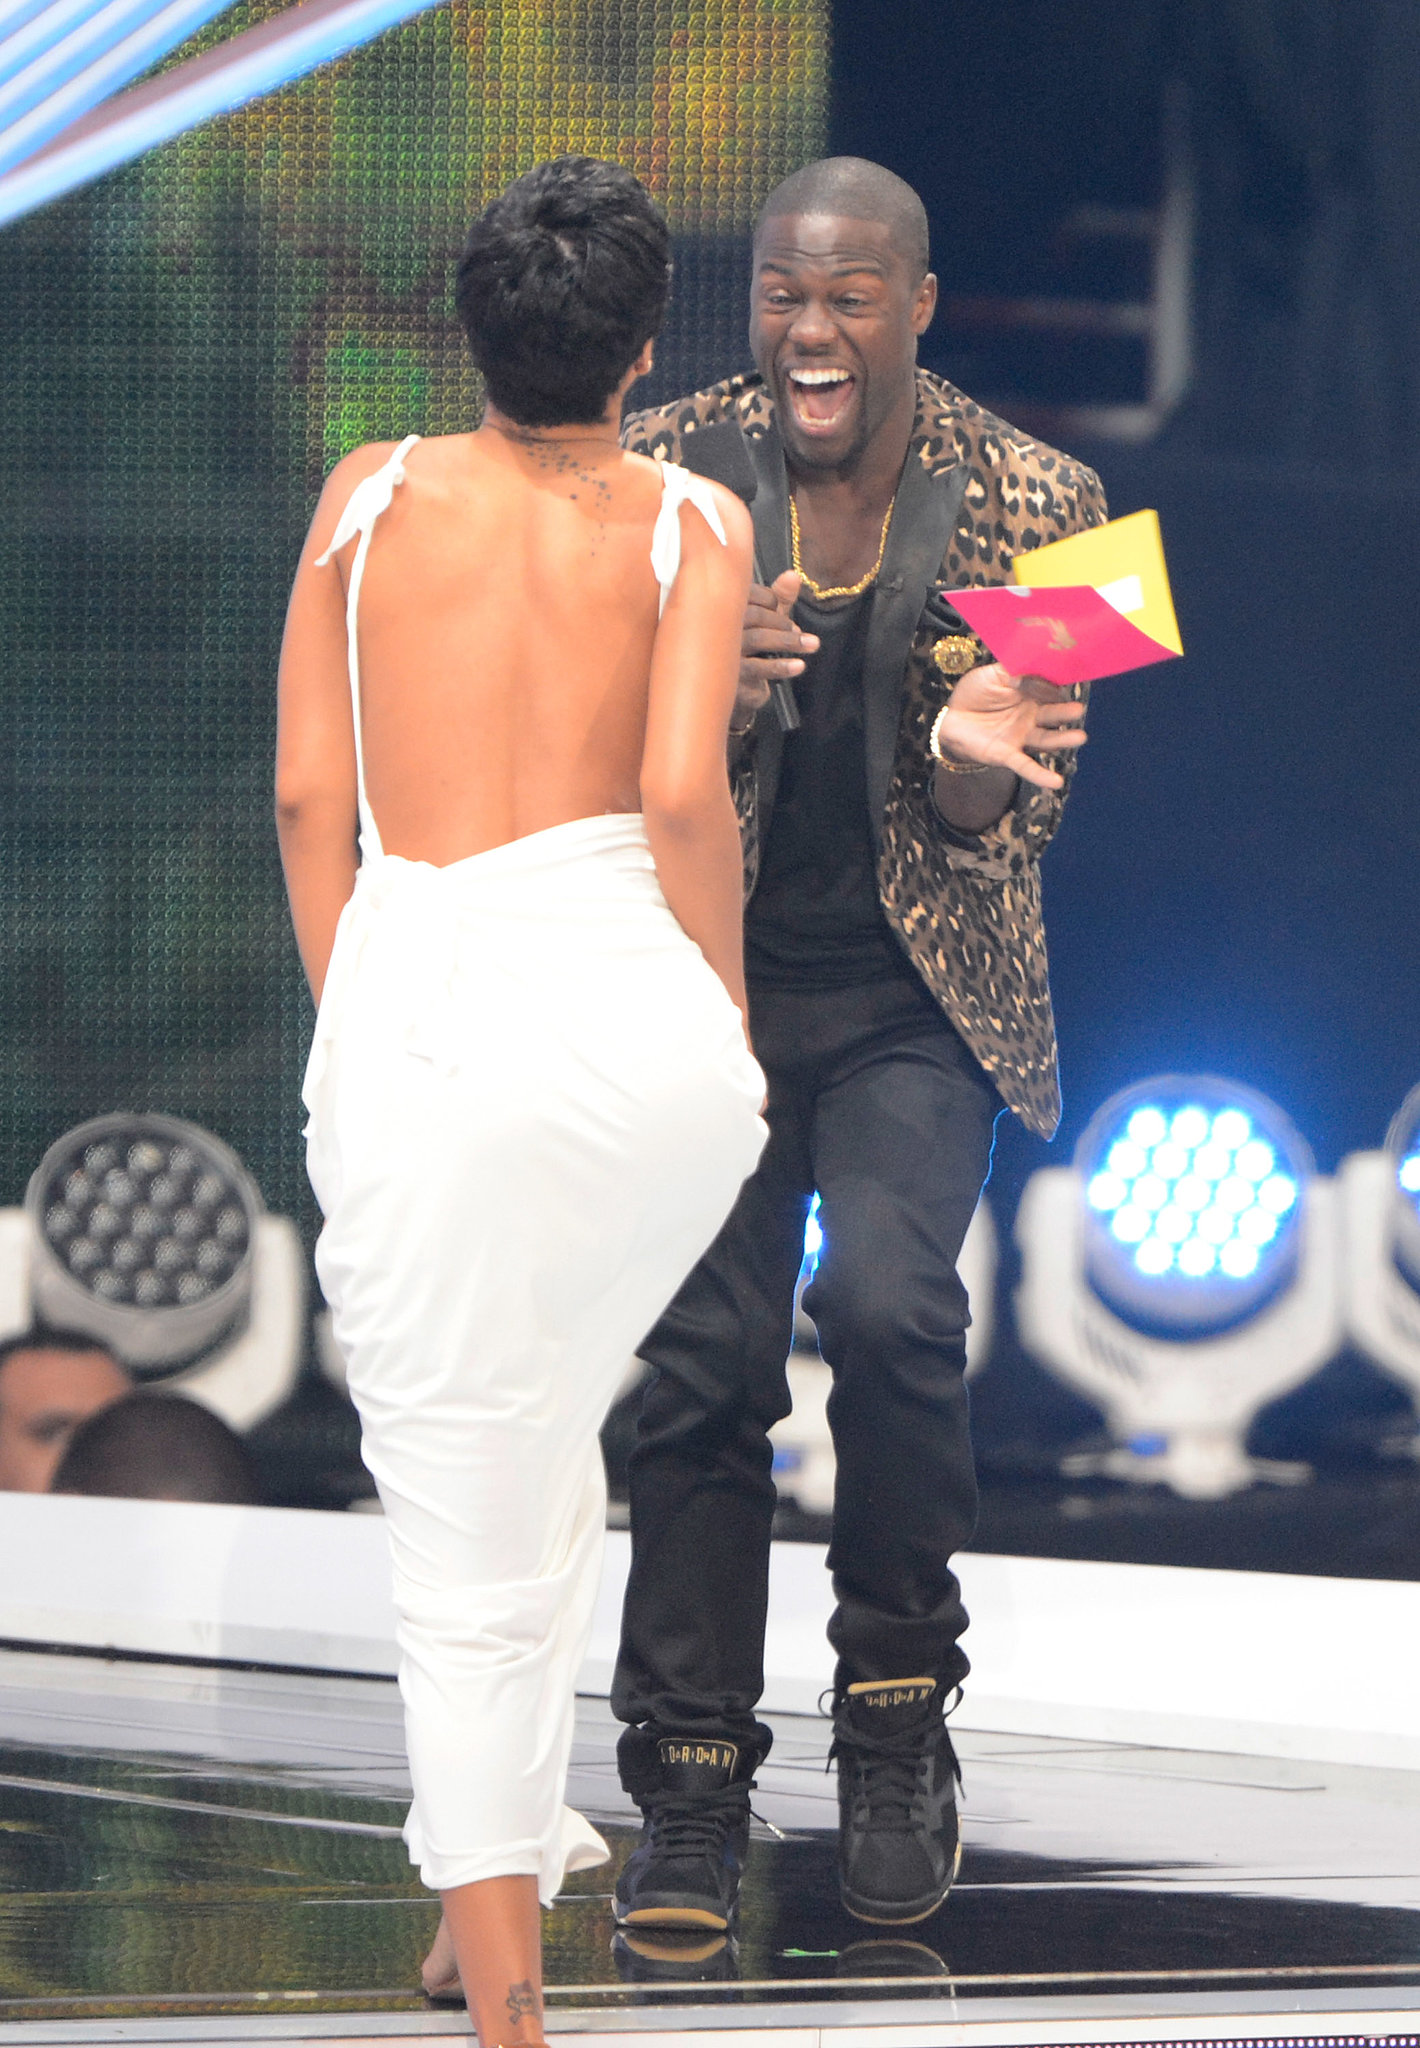 Kevin Hart freaked out at the 2012 VMAs when Rihanna took the stage.